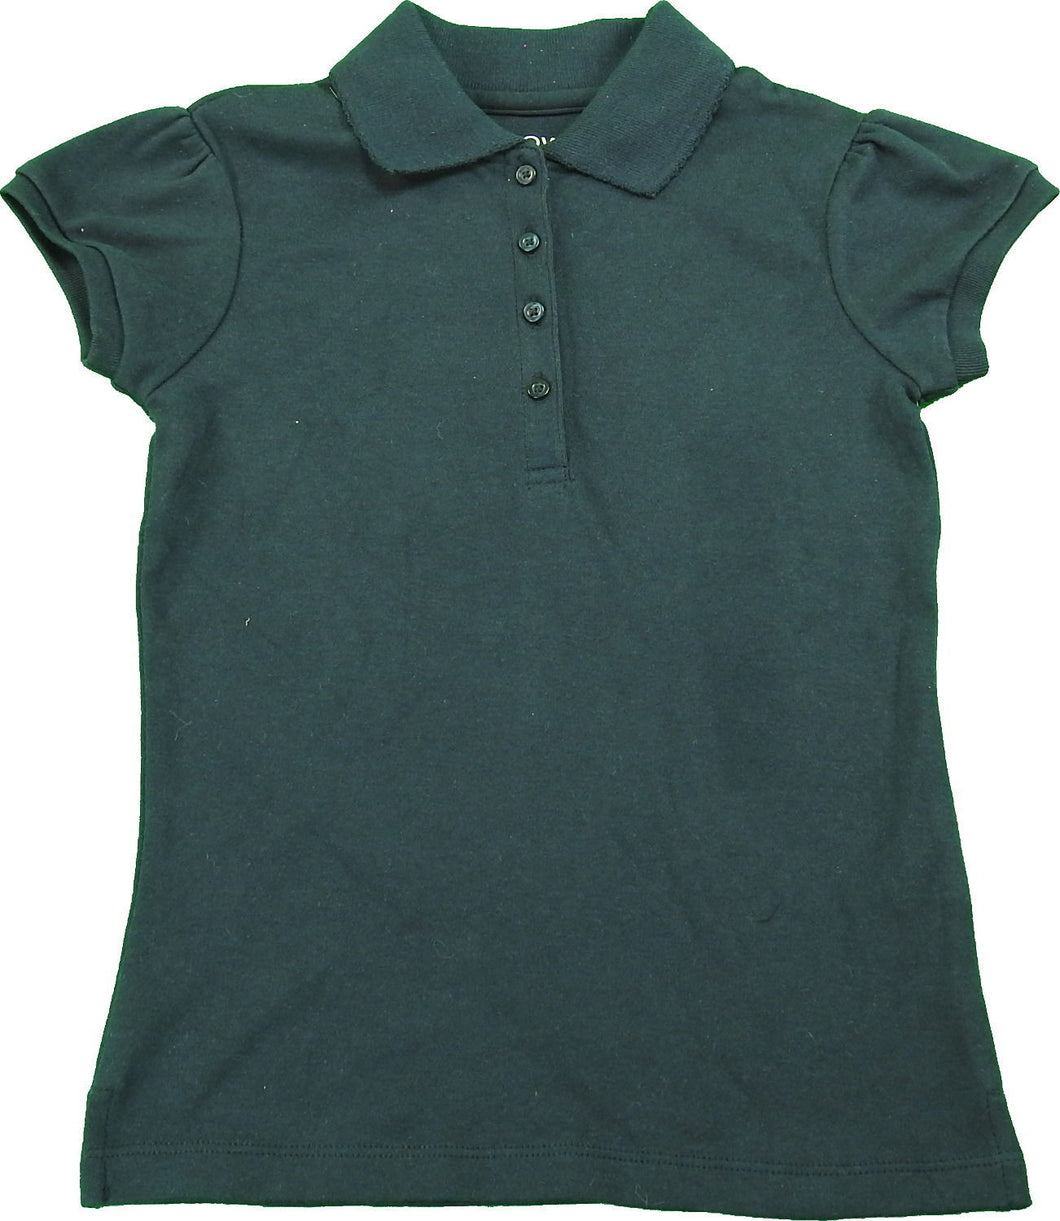 Arrow Girls Size Small (6/7) Short Sleeve School Uniform Polo, Navy